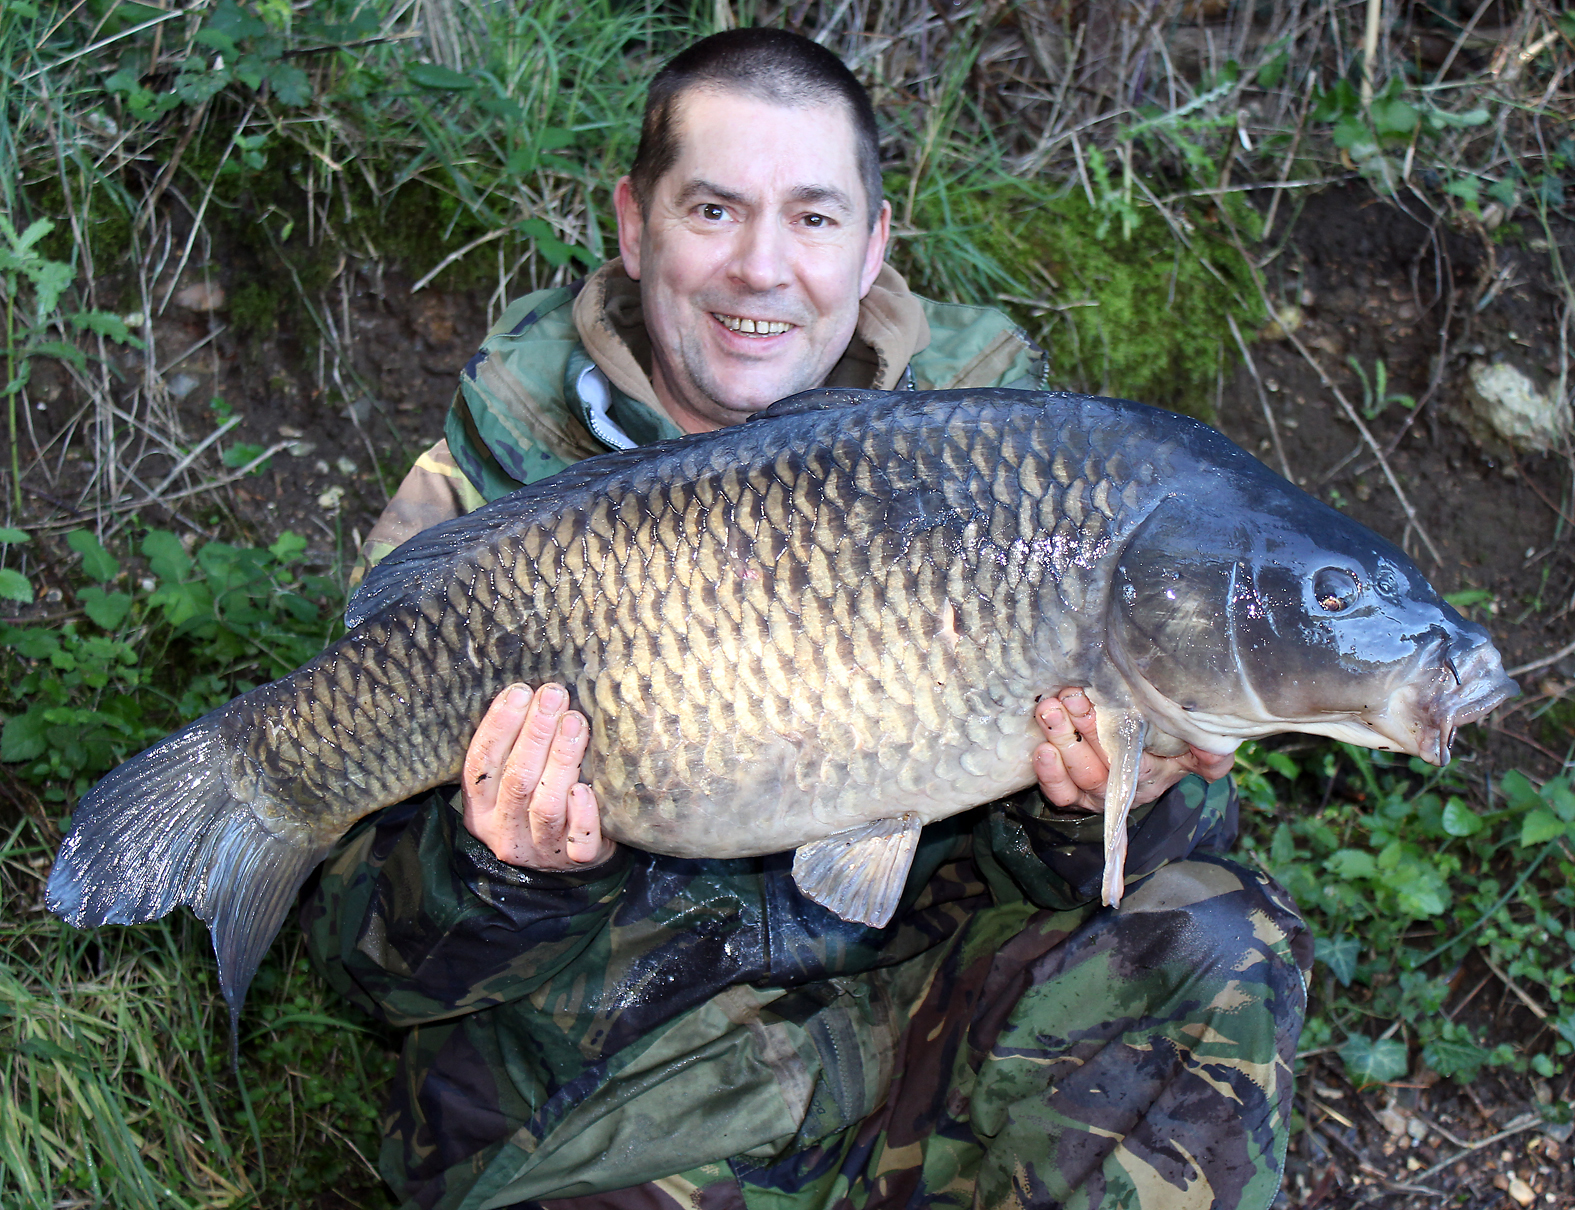 Top angling from Gary, a cracking 24lb common from our club water